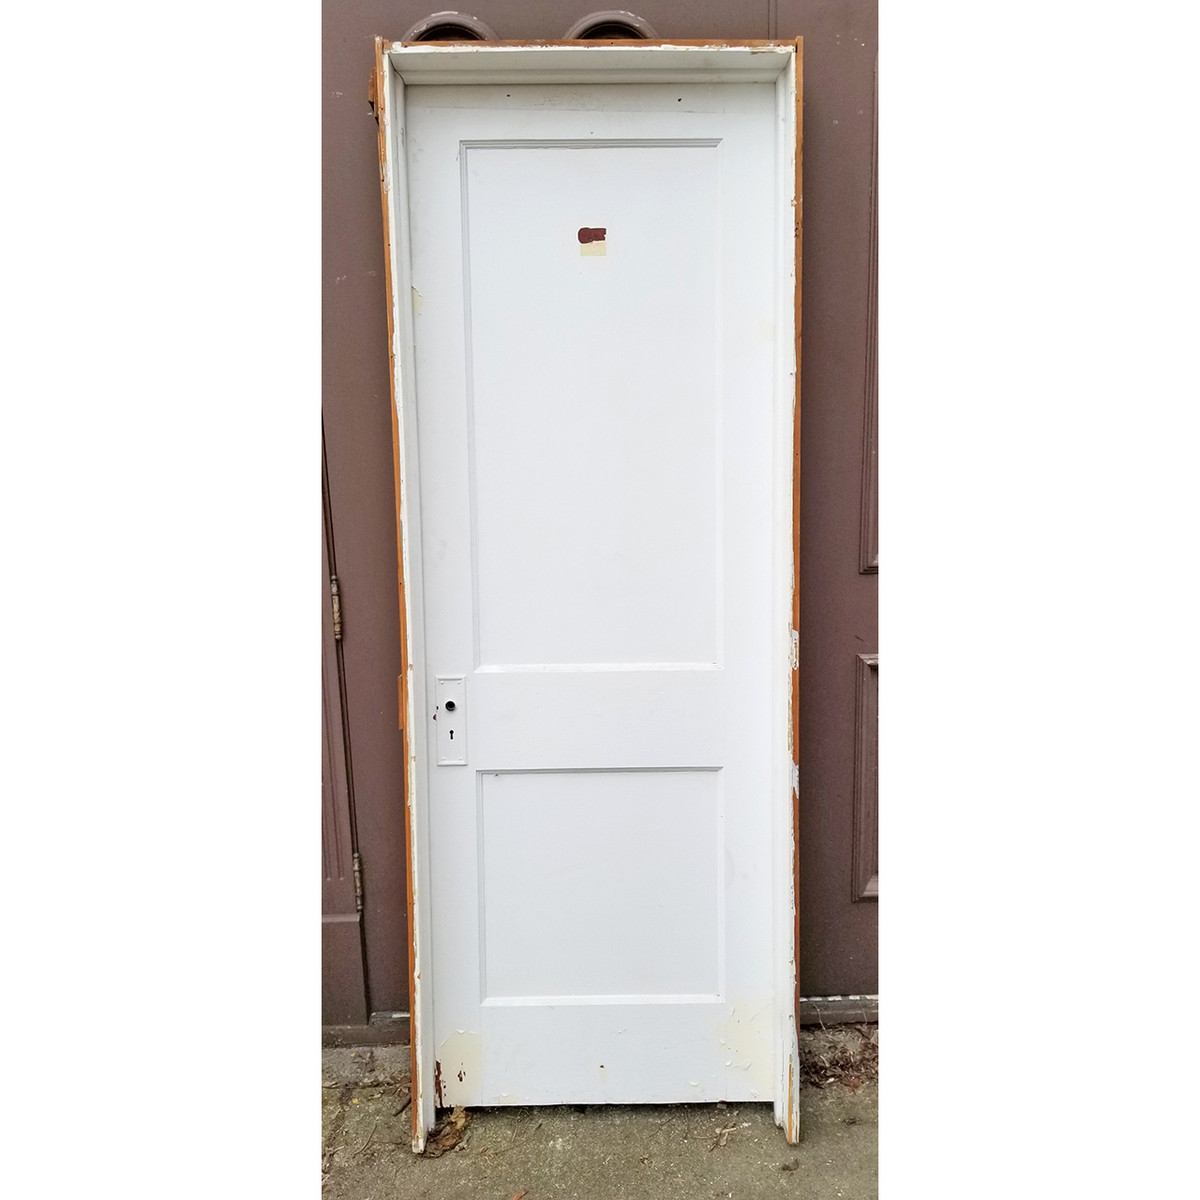 "D20008 - ANTIQUE TWO FLAT PANEL INTERIOR DOOR with Jamb 28"" x 79"""